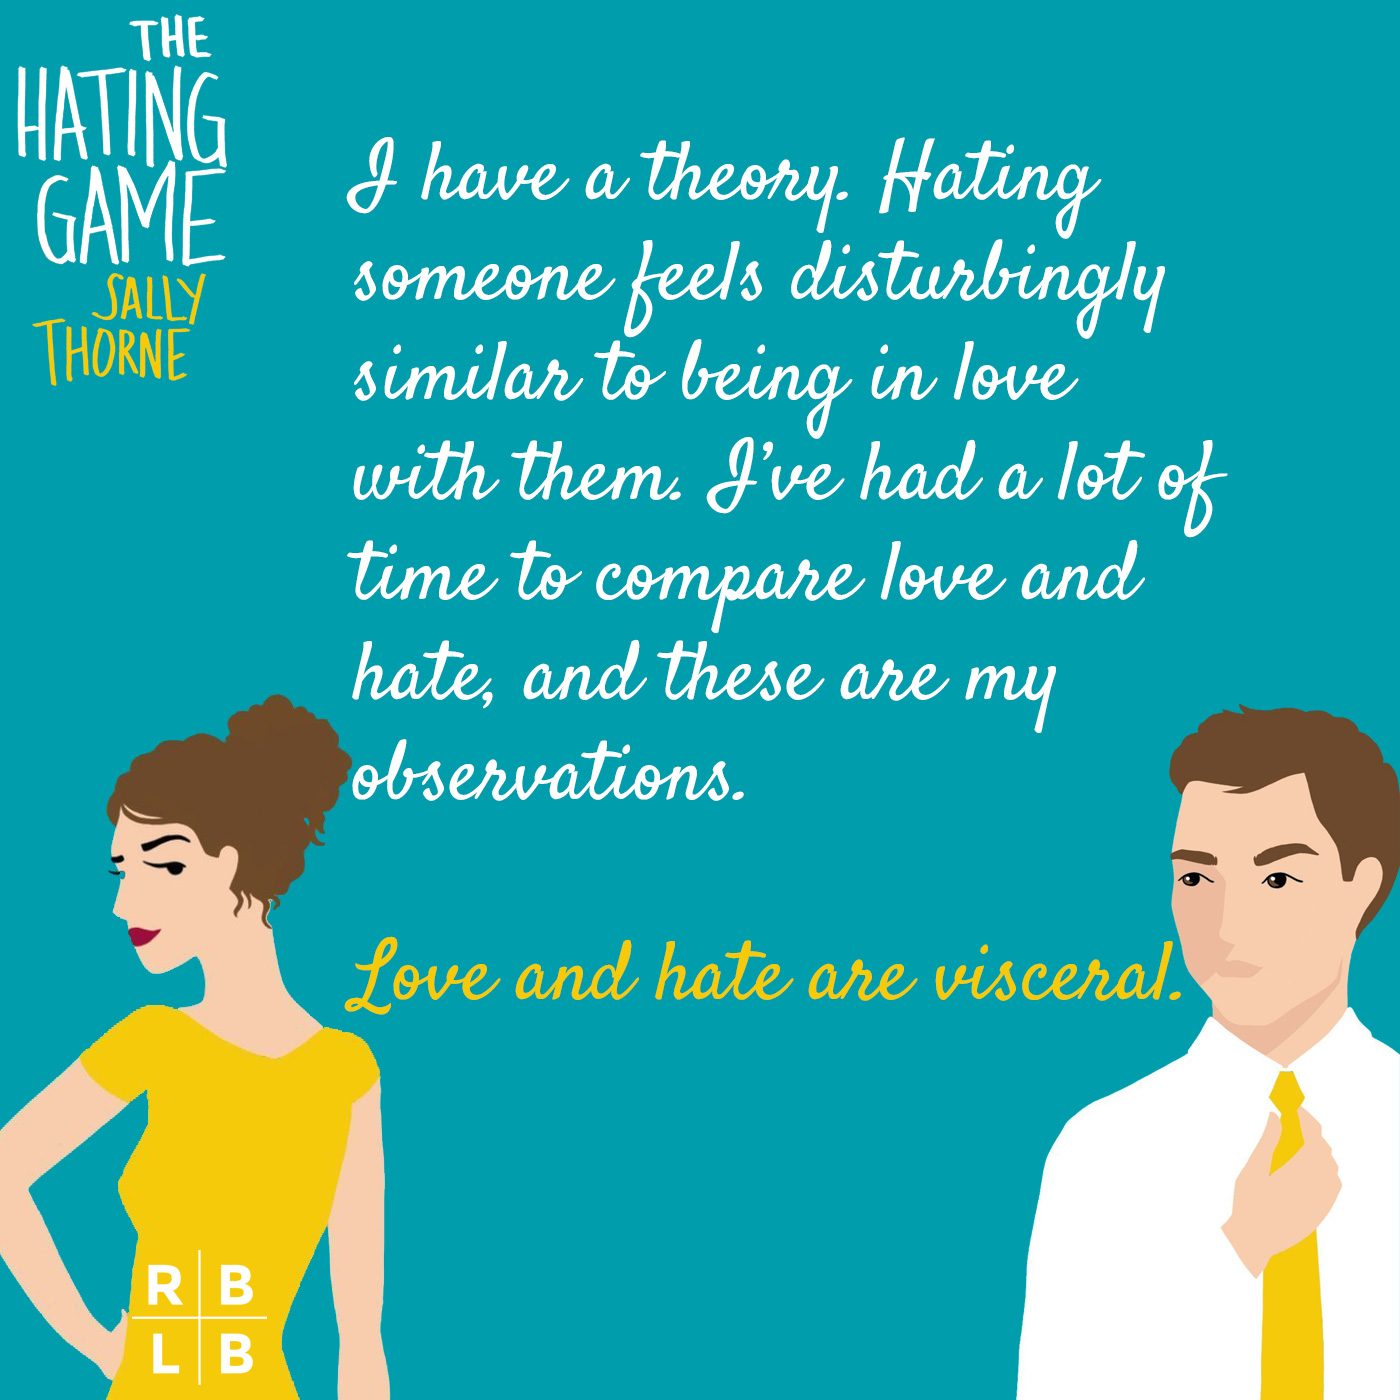 Teaser - The Hating Game by Sally Thorne